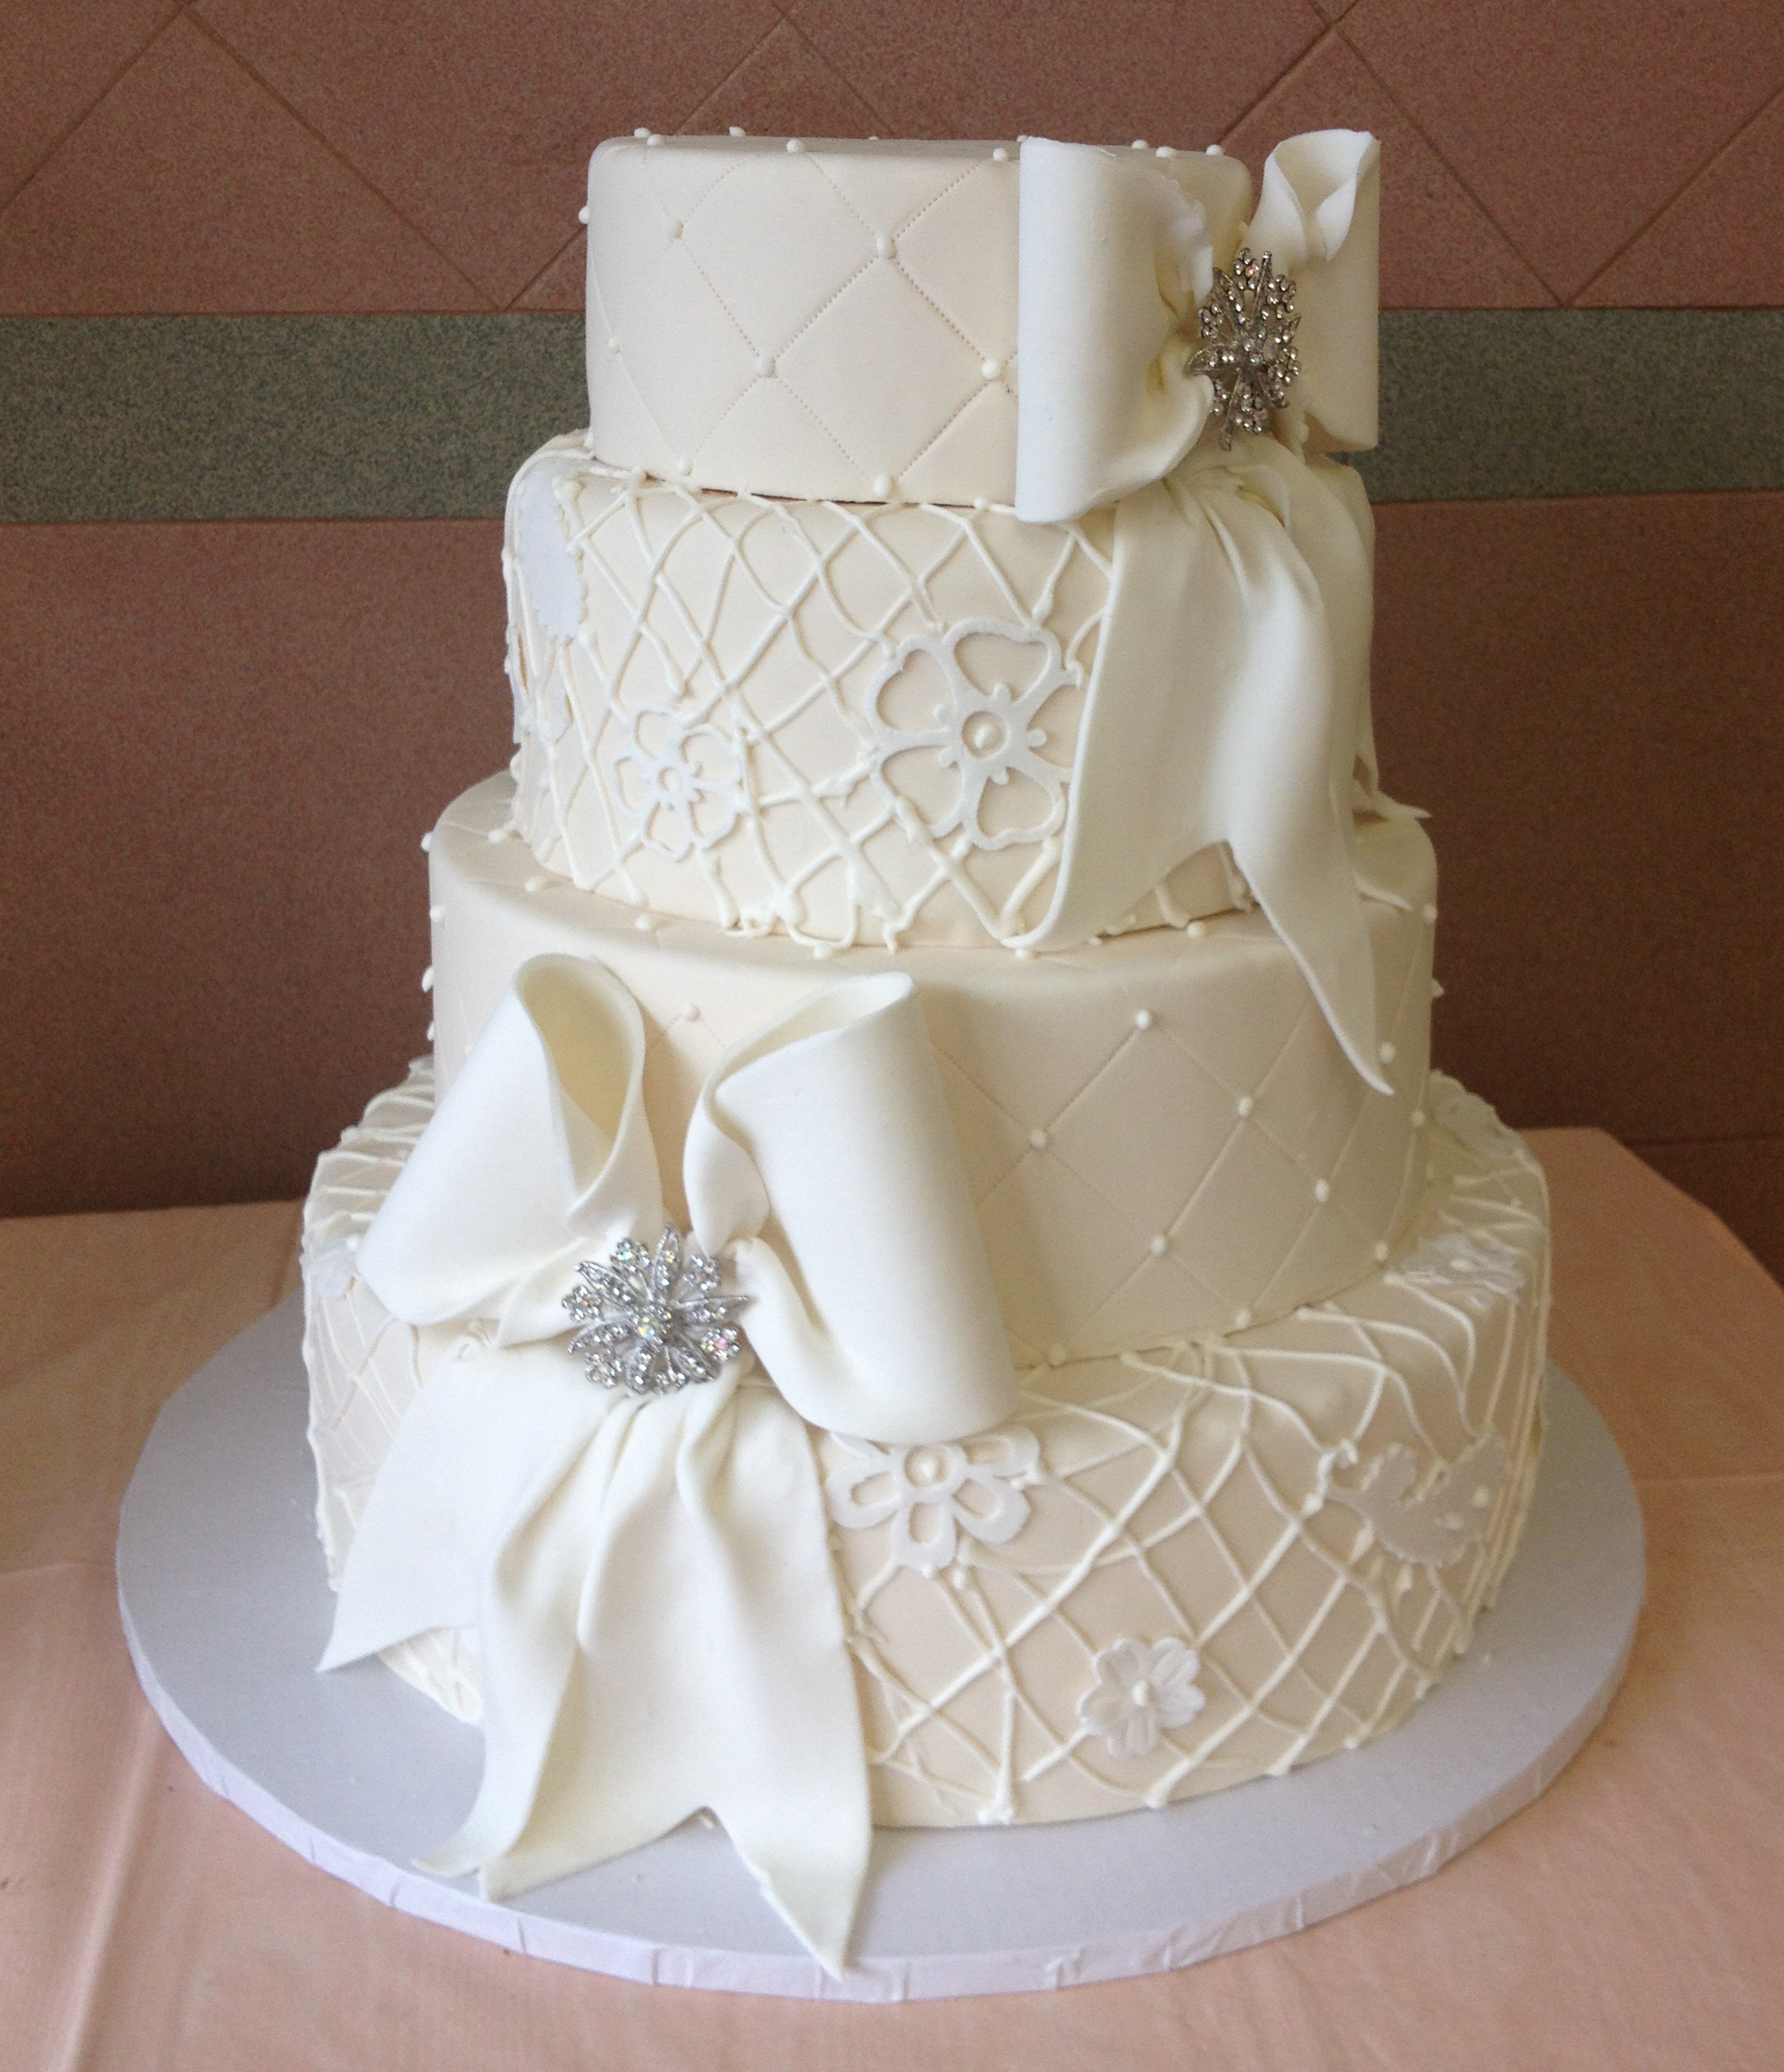 49 in Ivory Rolled Fondant with White Accents & Large Bows